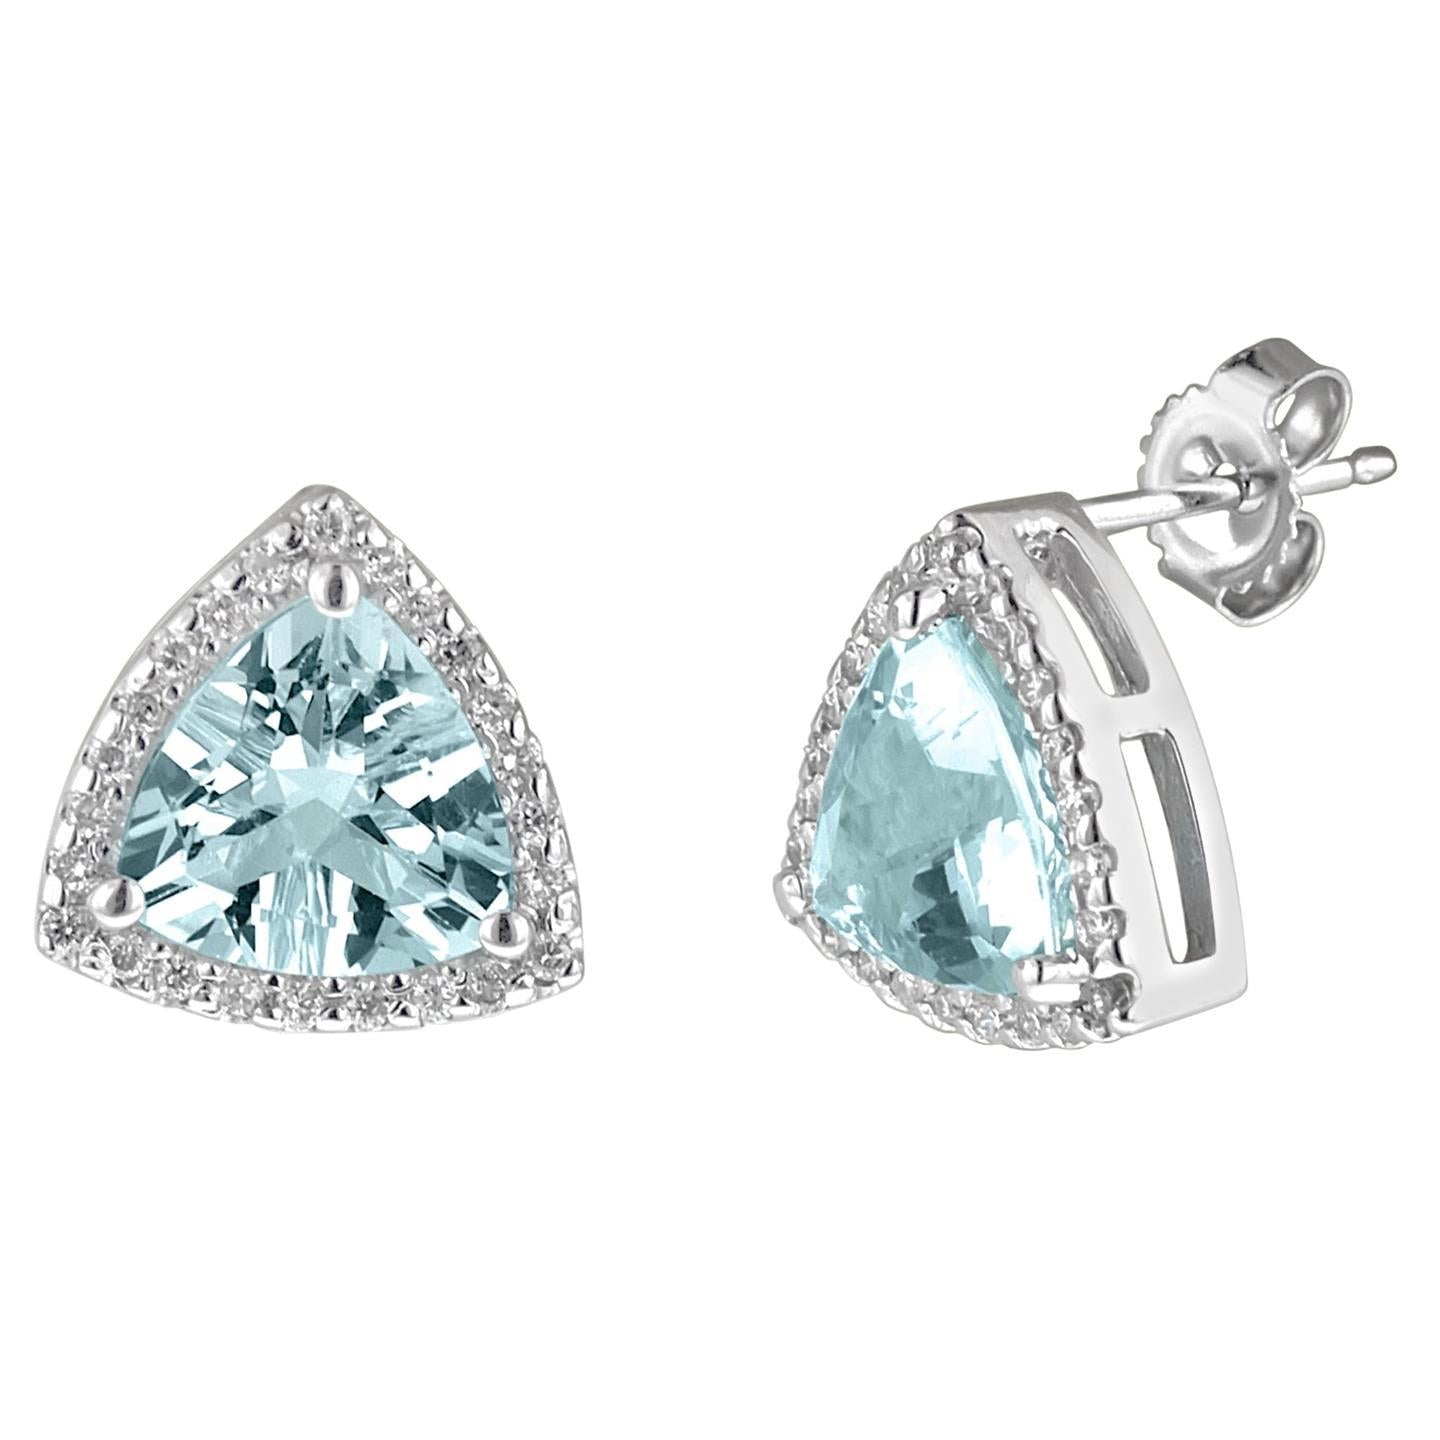 Trillion Cut Aquamarine With Round Diamonds 6.20 Ct. Studs Earring Halo Cluster Gemstone Earring